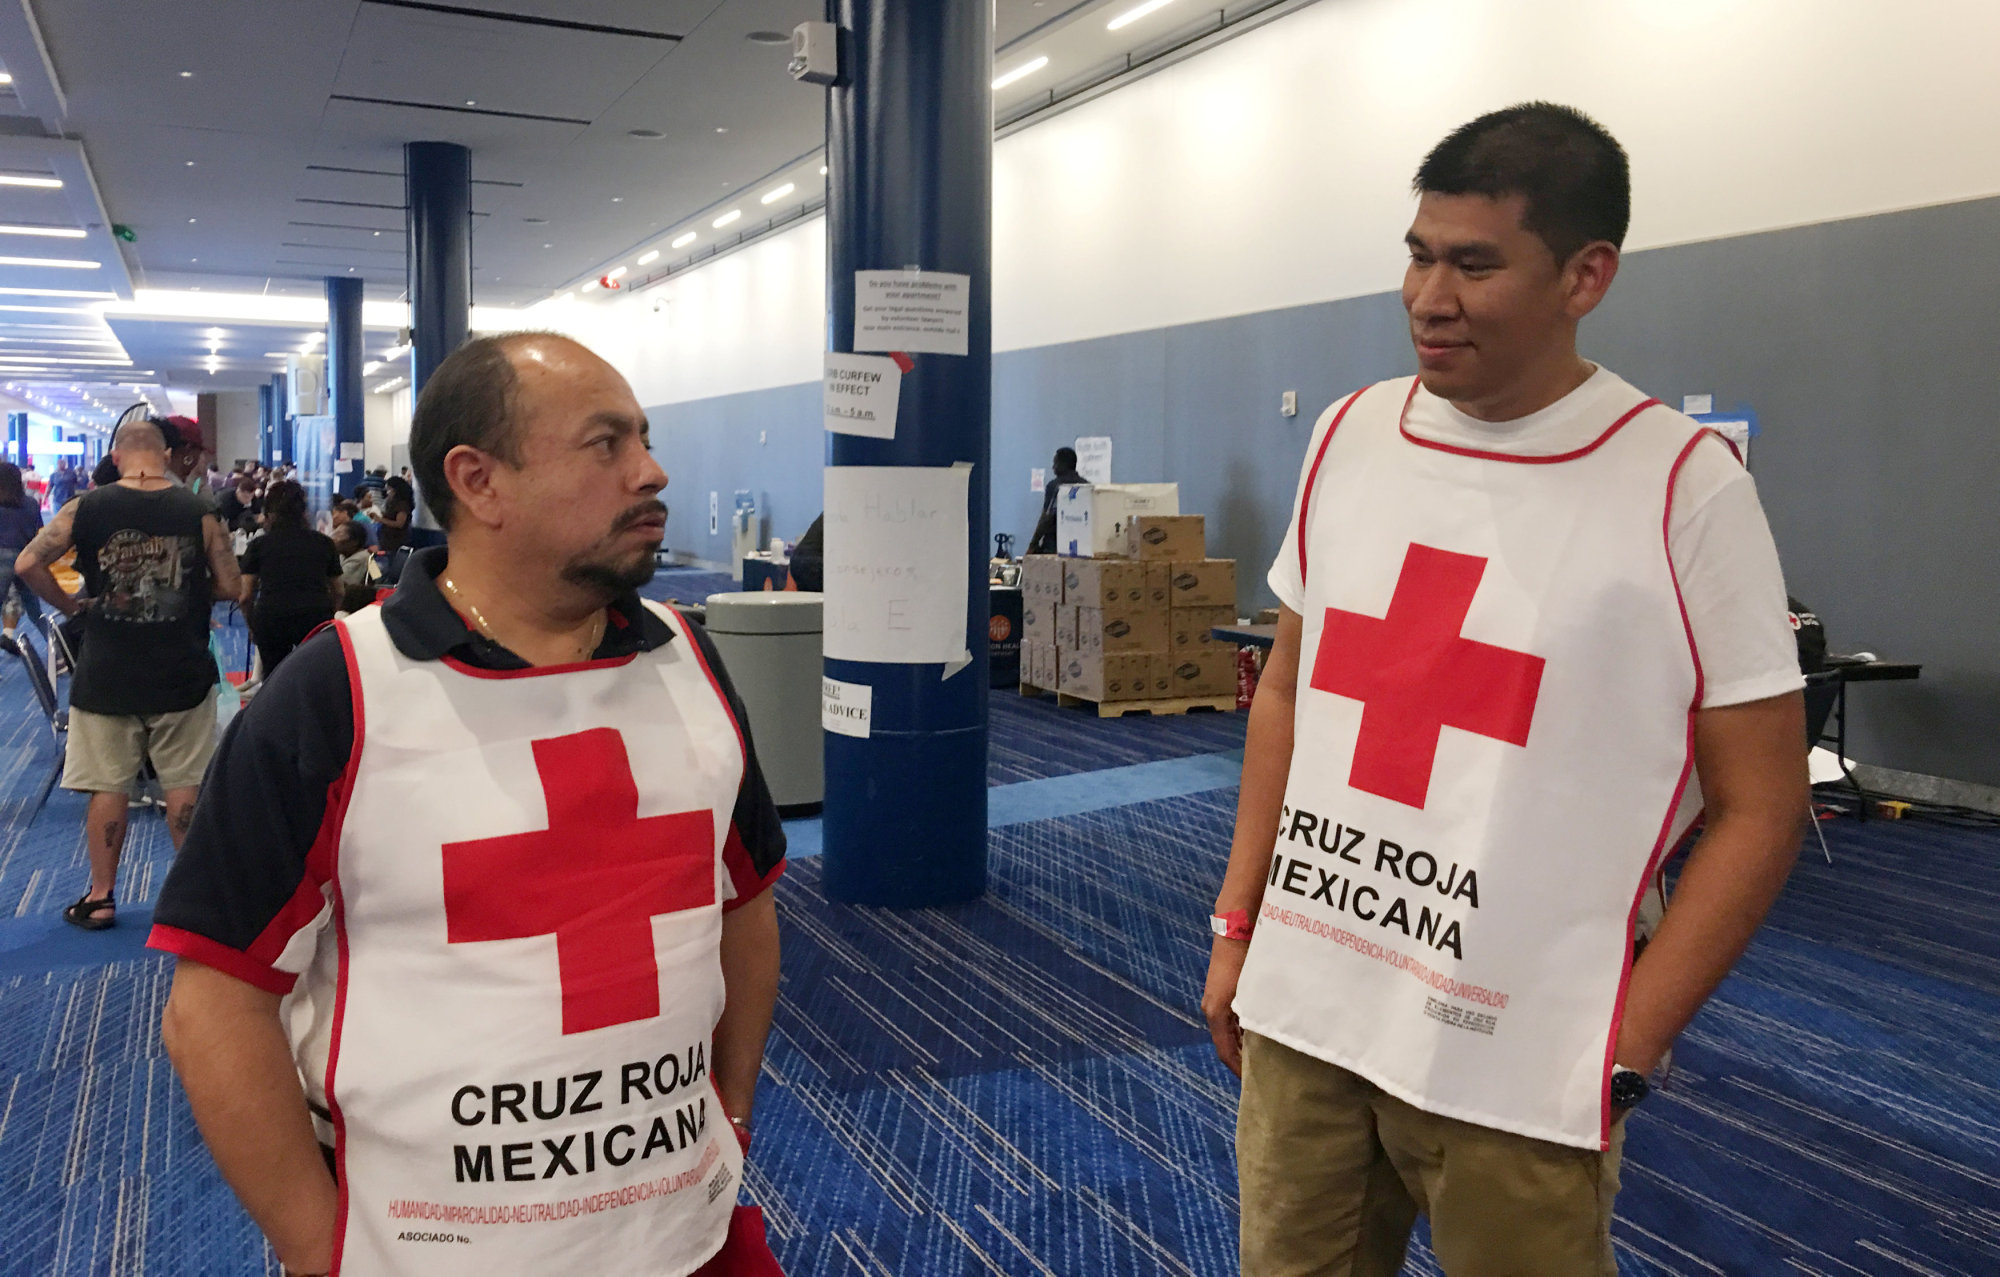 Marco Franco (left), deputy director of Mexican Red Cross disaster relief, talks with Gustavo Santillan, part of a group of 33 Mexican Red Cross volunteers helping victims of Hurricane Harvey, at the George R. Brown convention center in Houston on Monday. | REUTERS